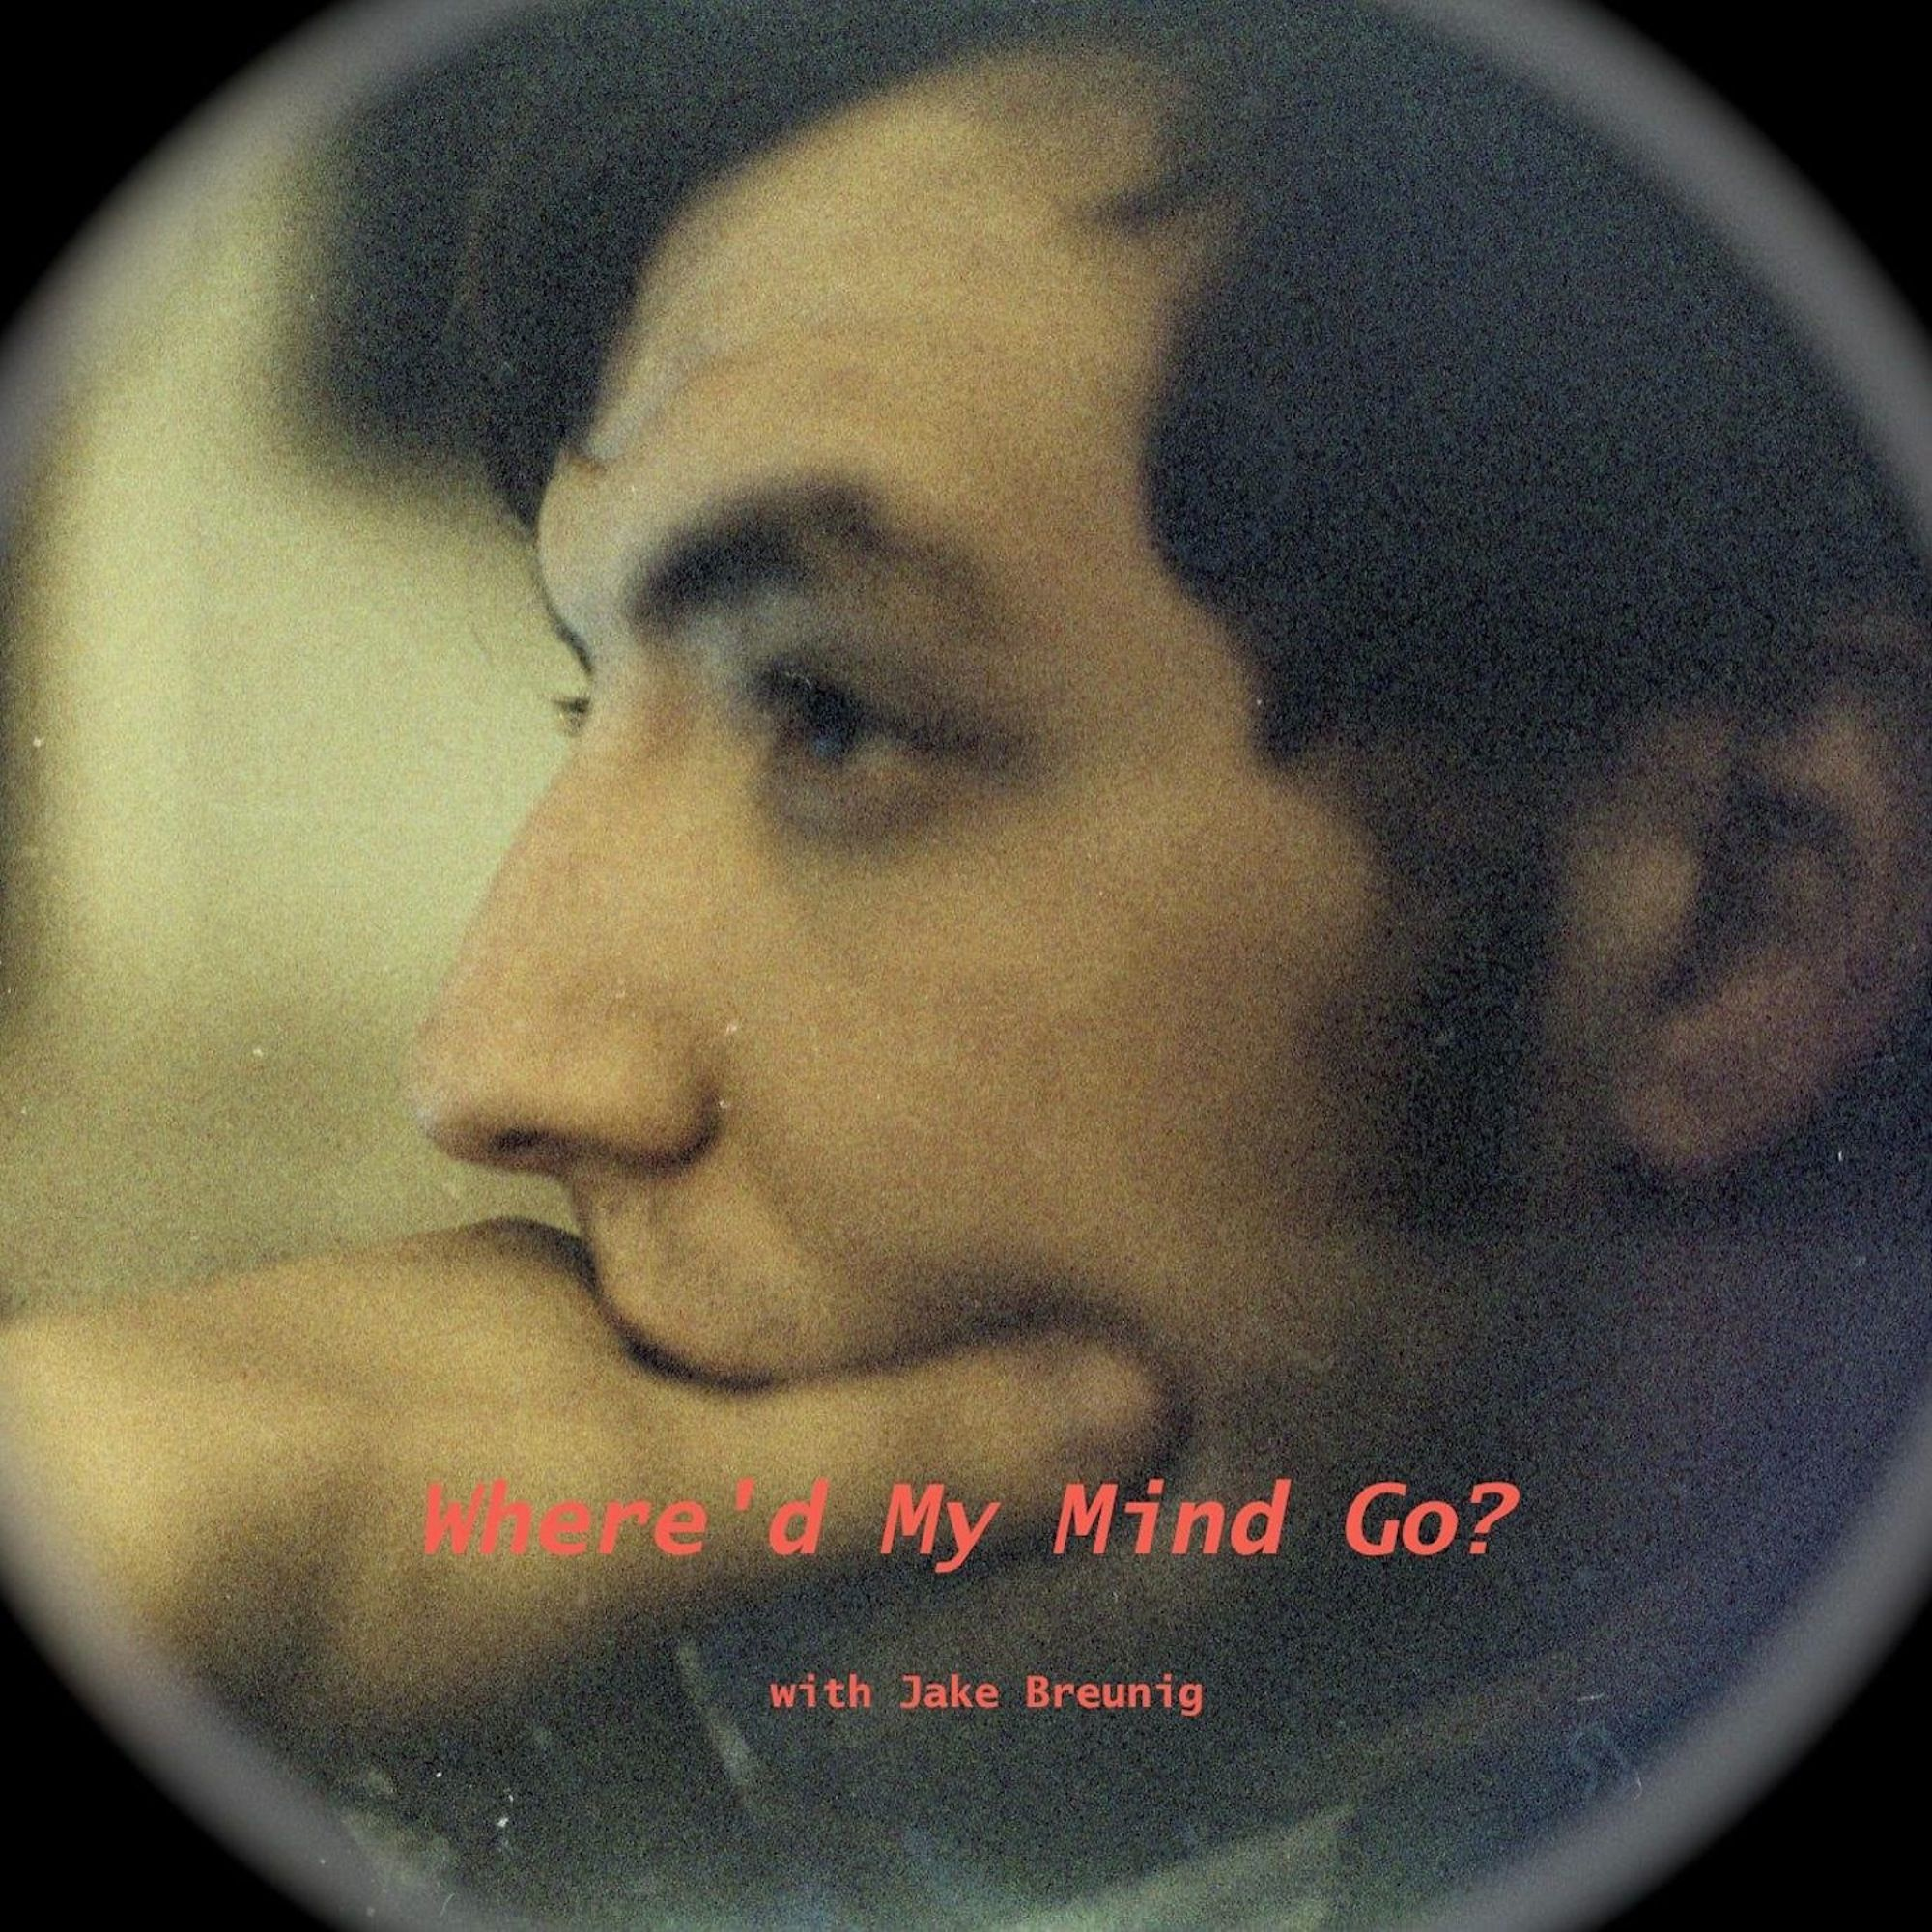 Where'd My Mind Go? with Jake Breunig